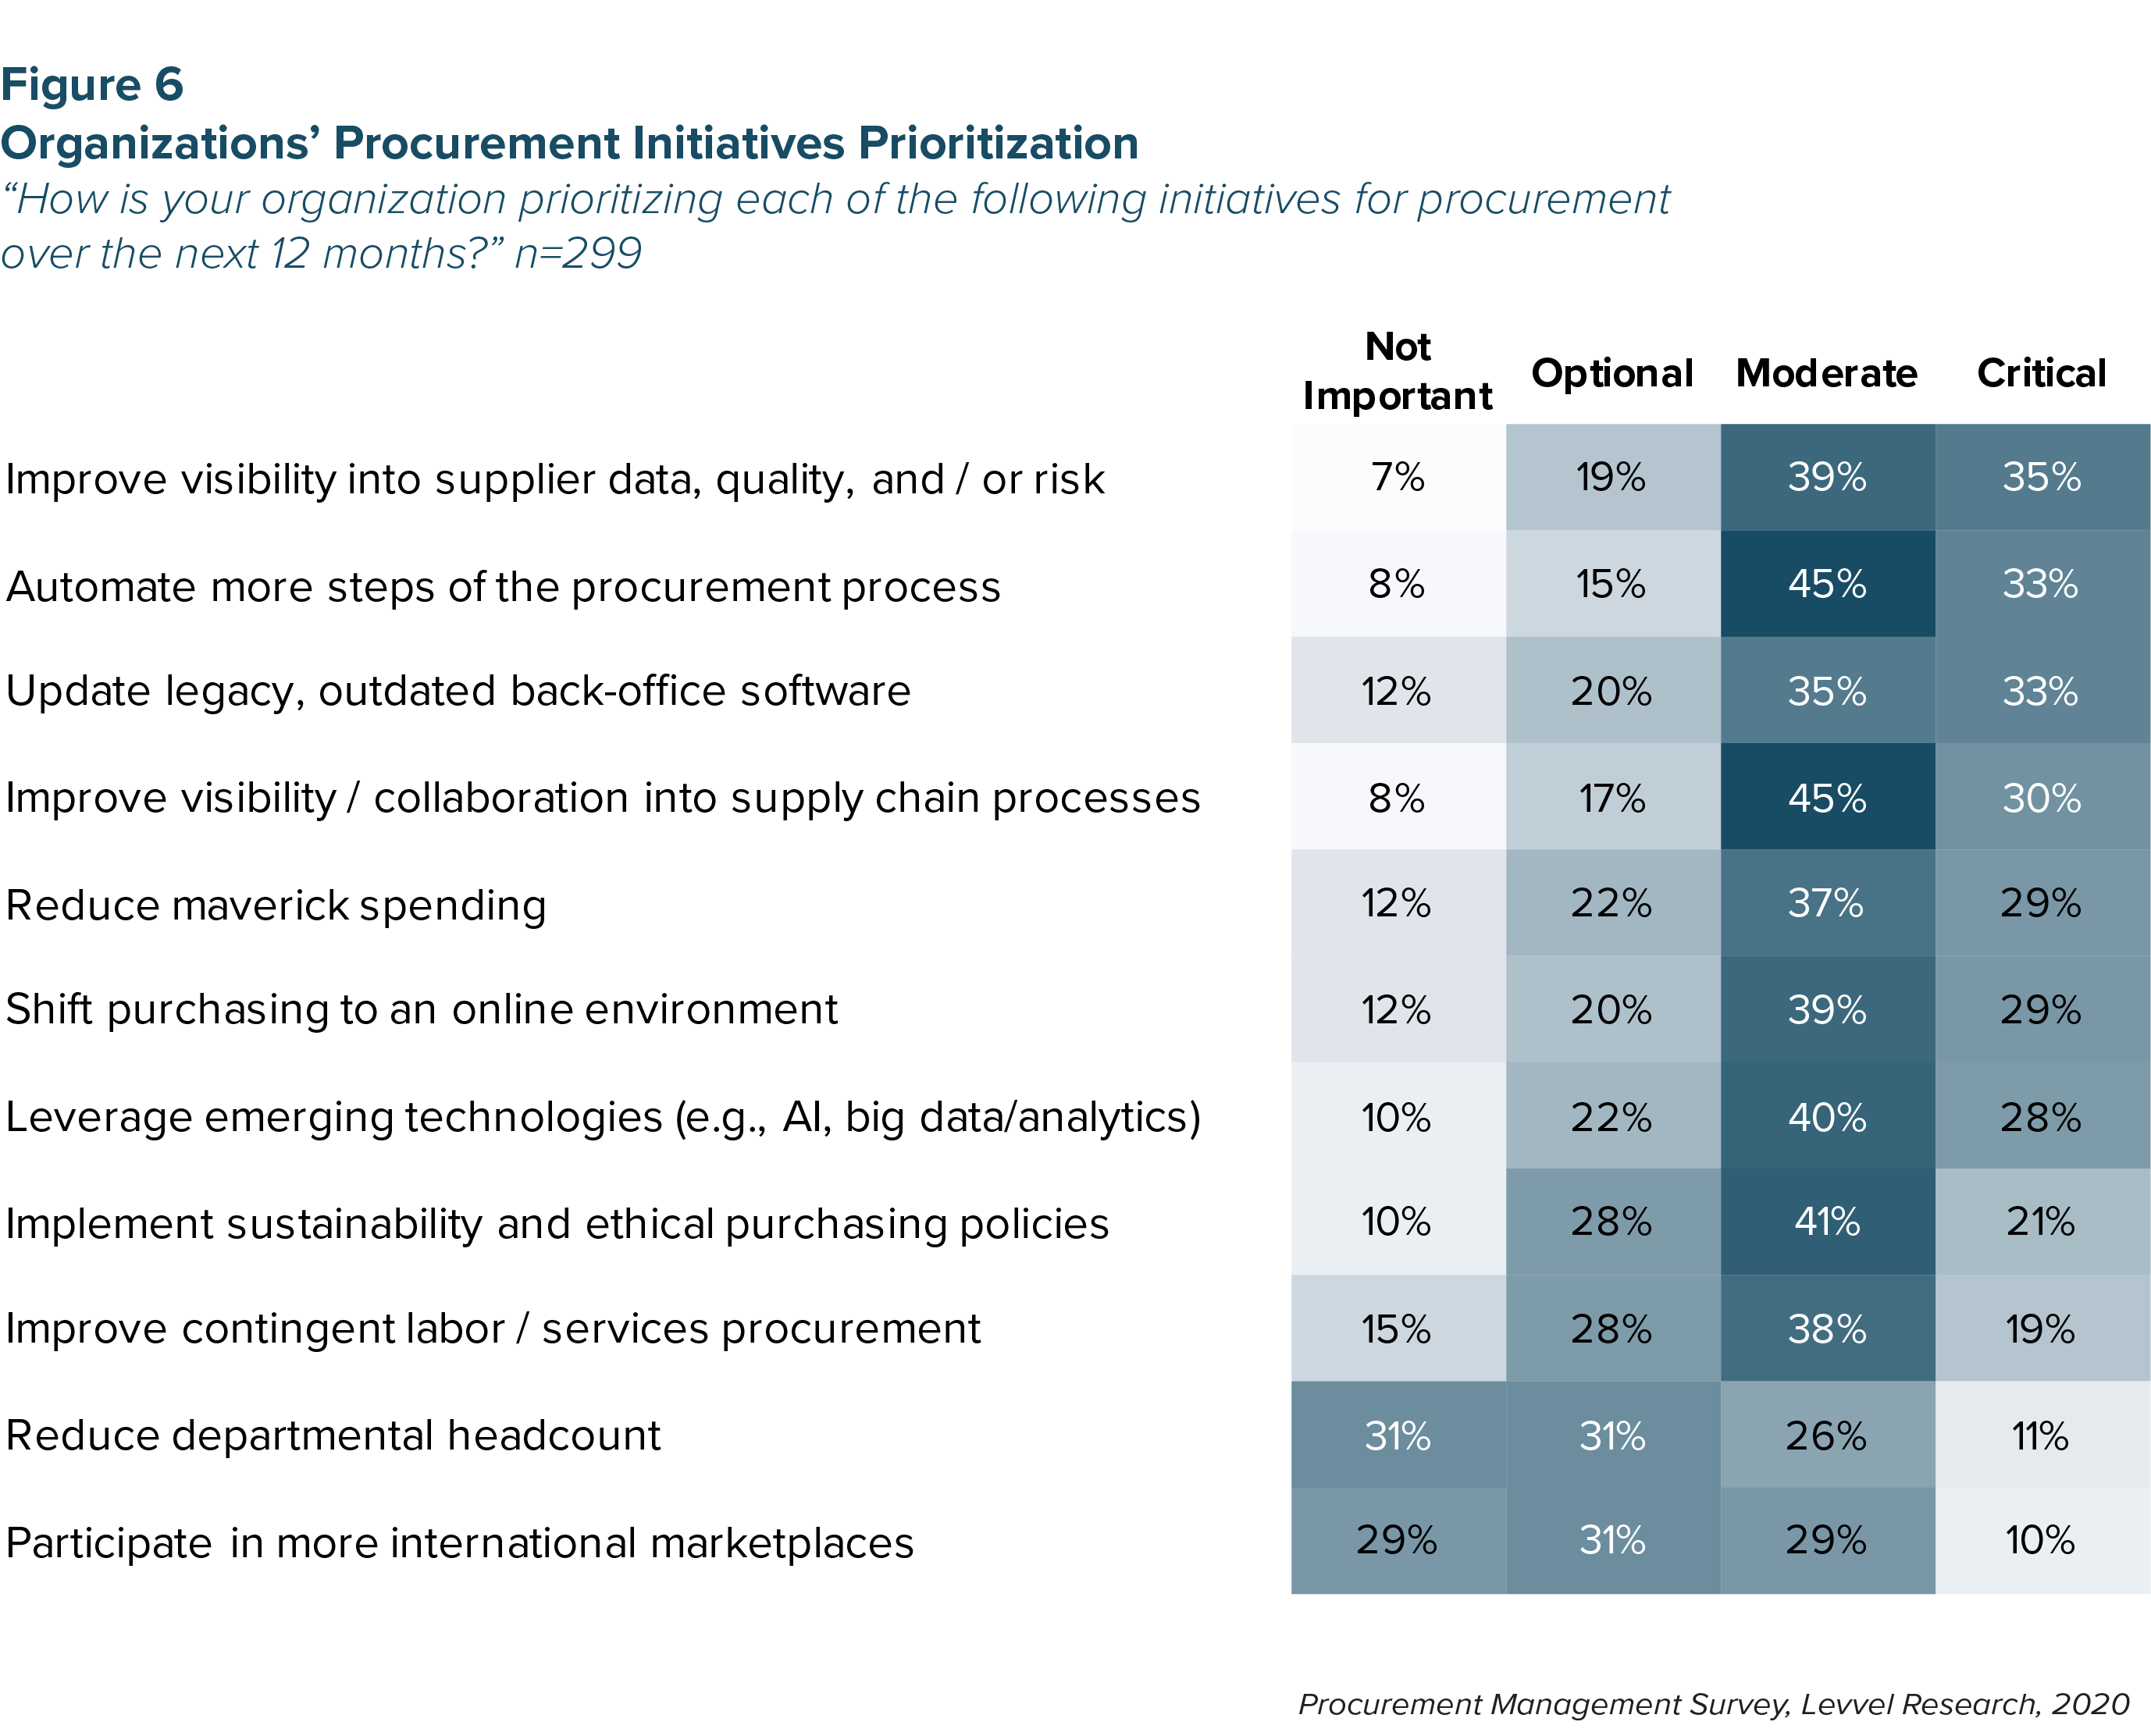 Figure 6 - Organizations' Procurement Initiatives Prioritization